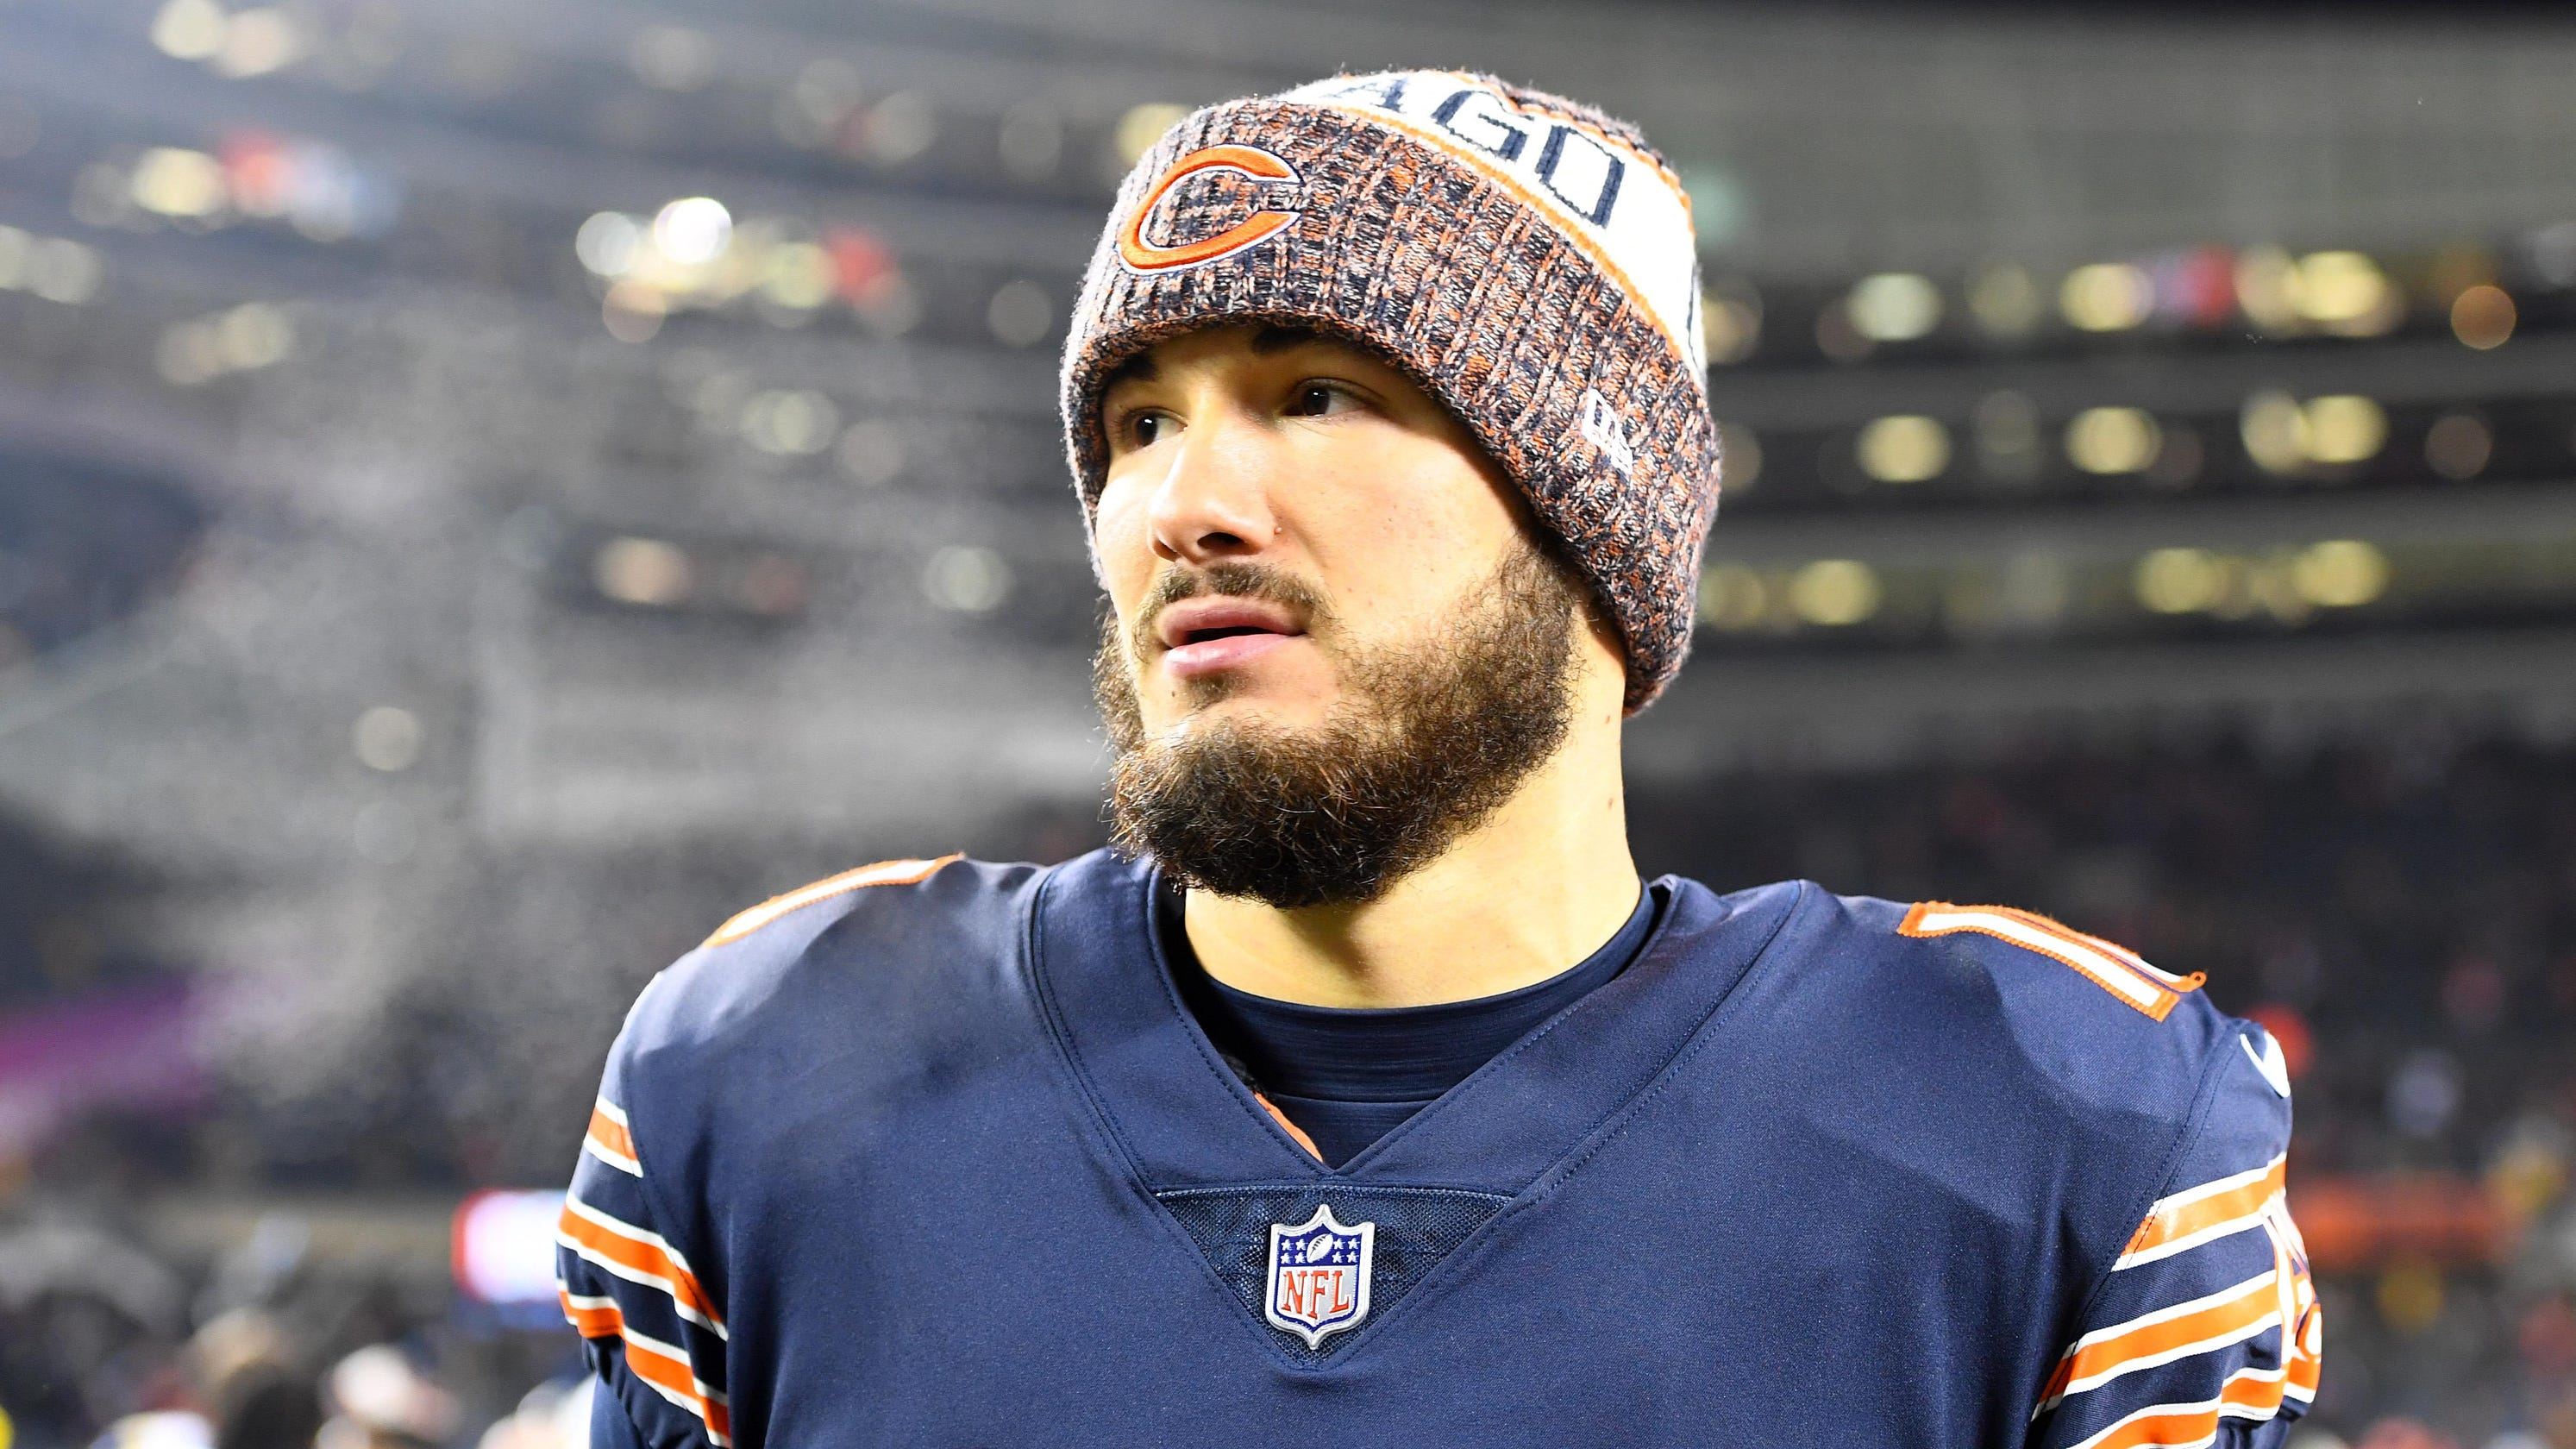 Mitchell Trubisky's failure with Bears should be last straw for GM